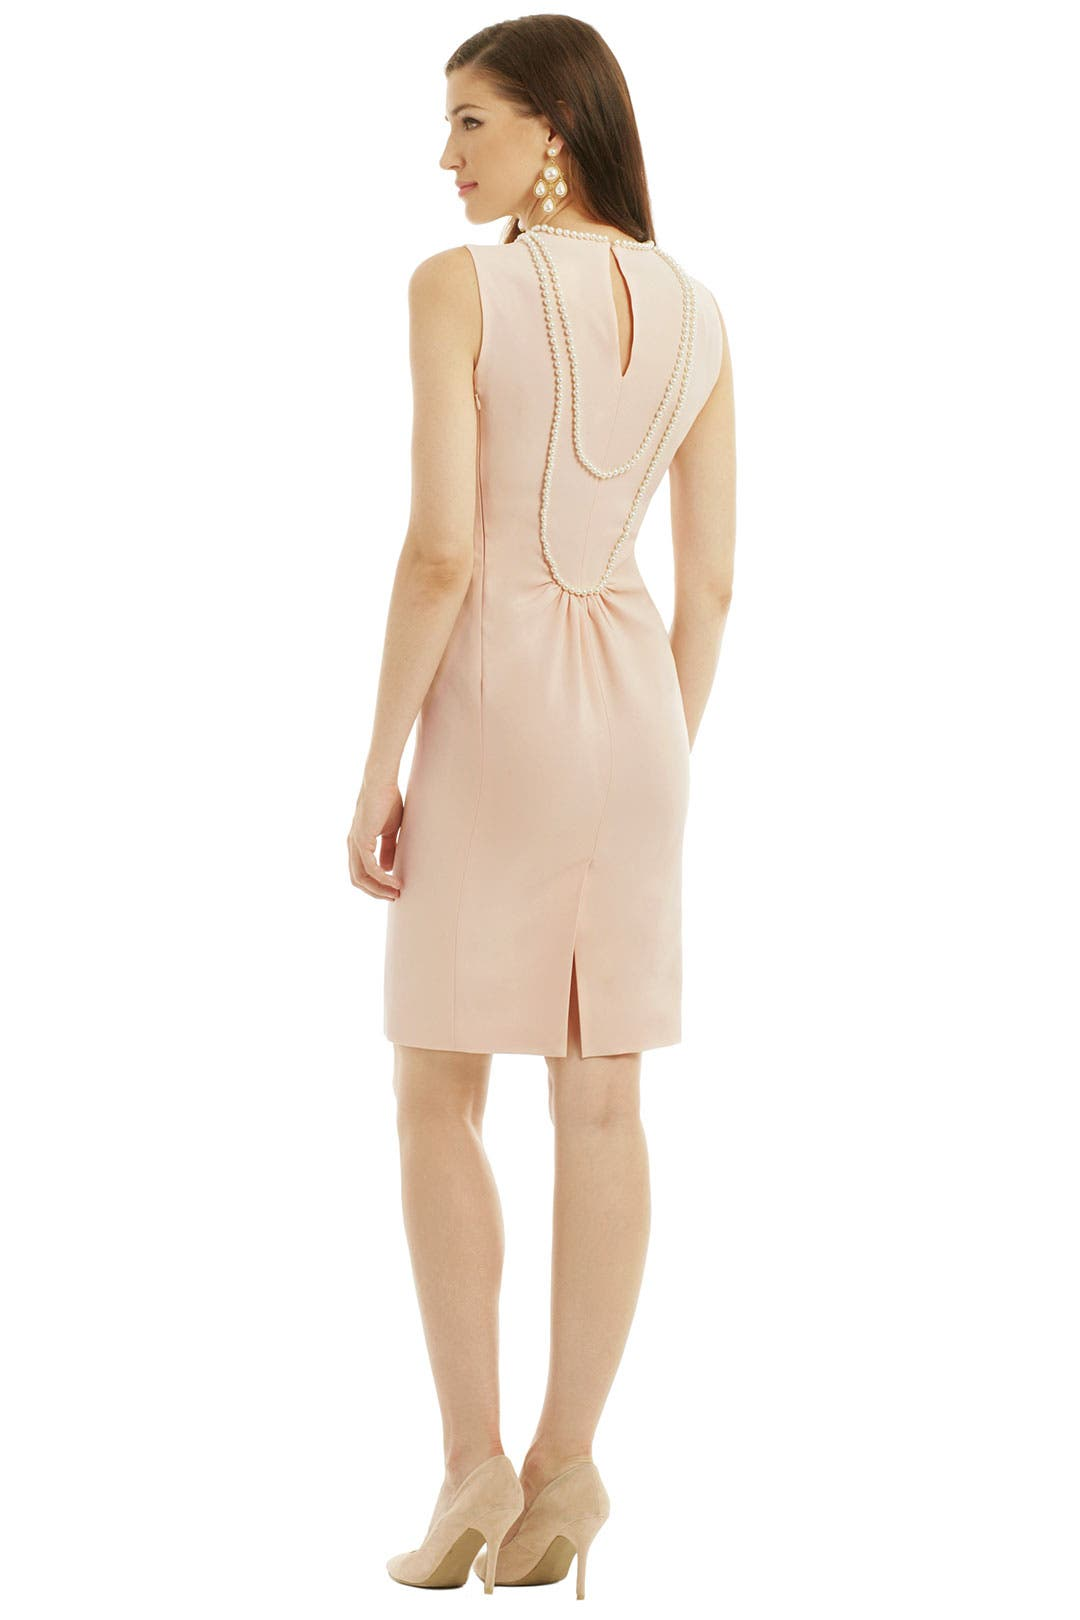 Pearl Draped Sheath by Moschino